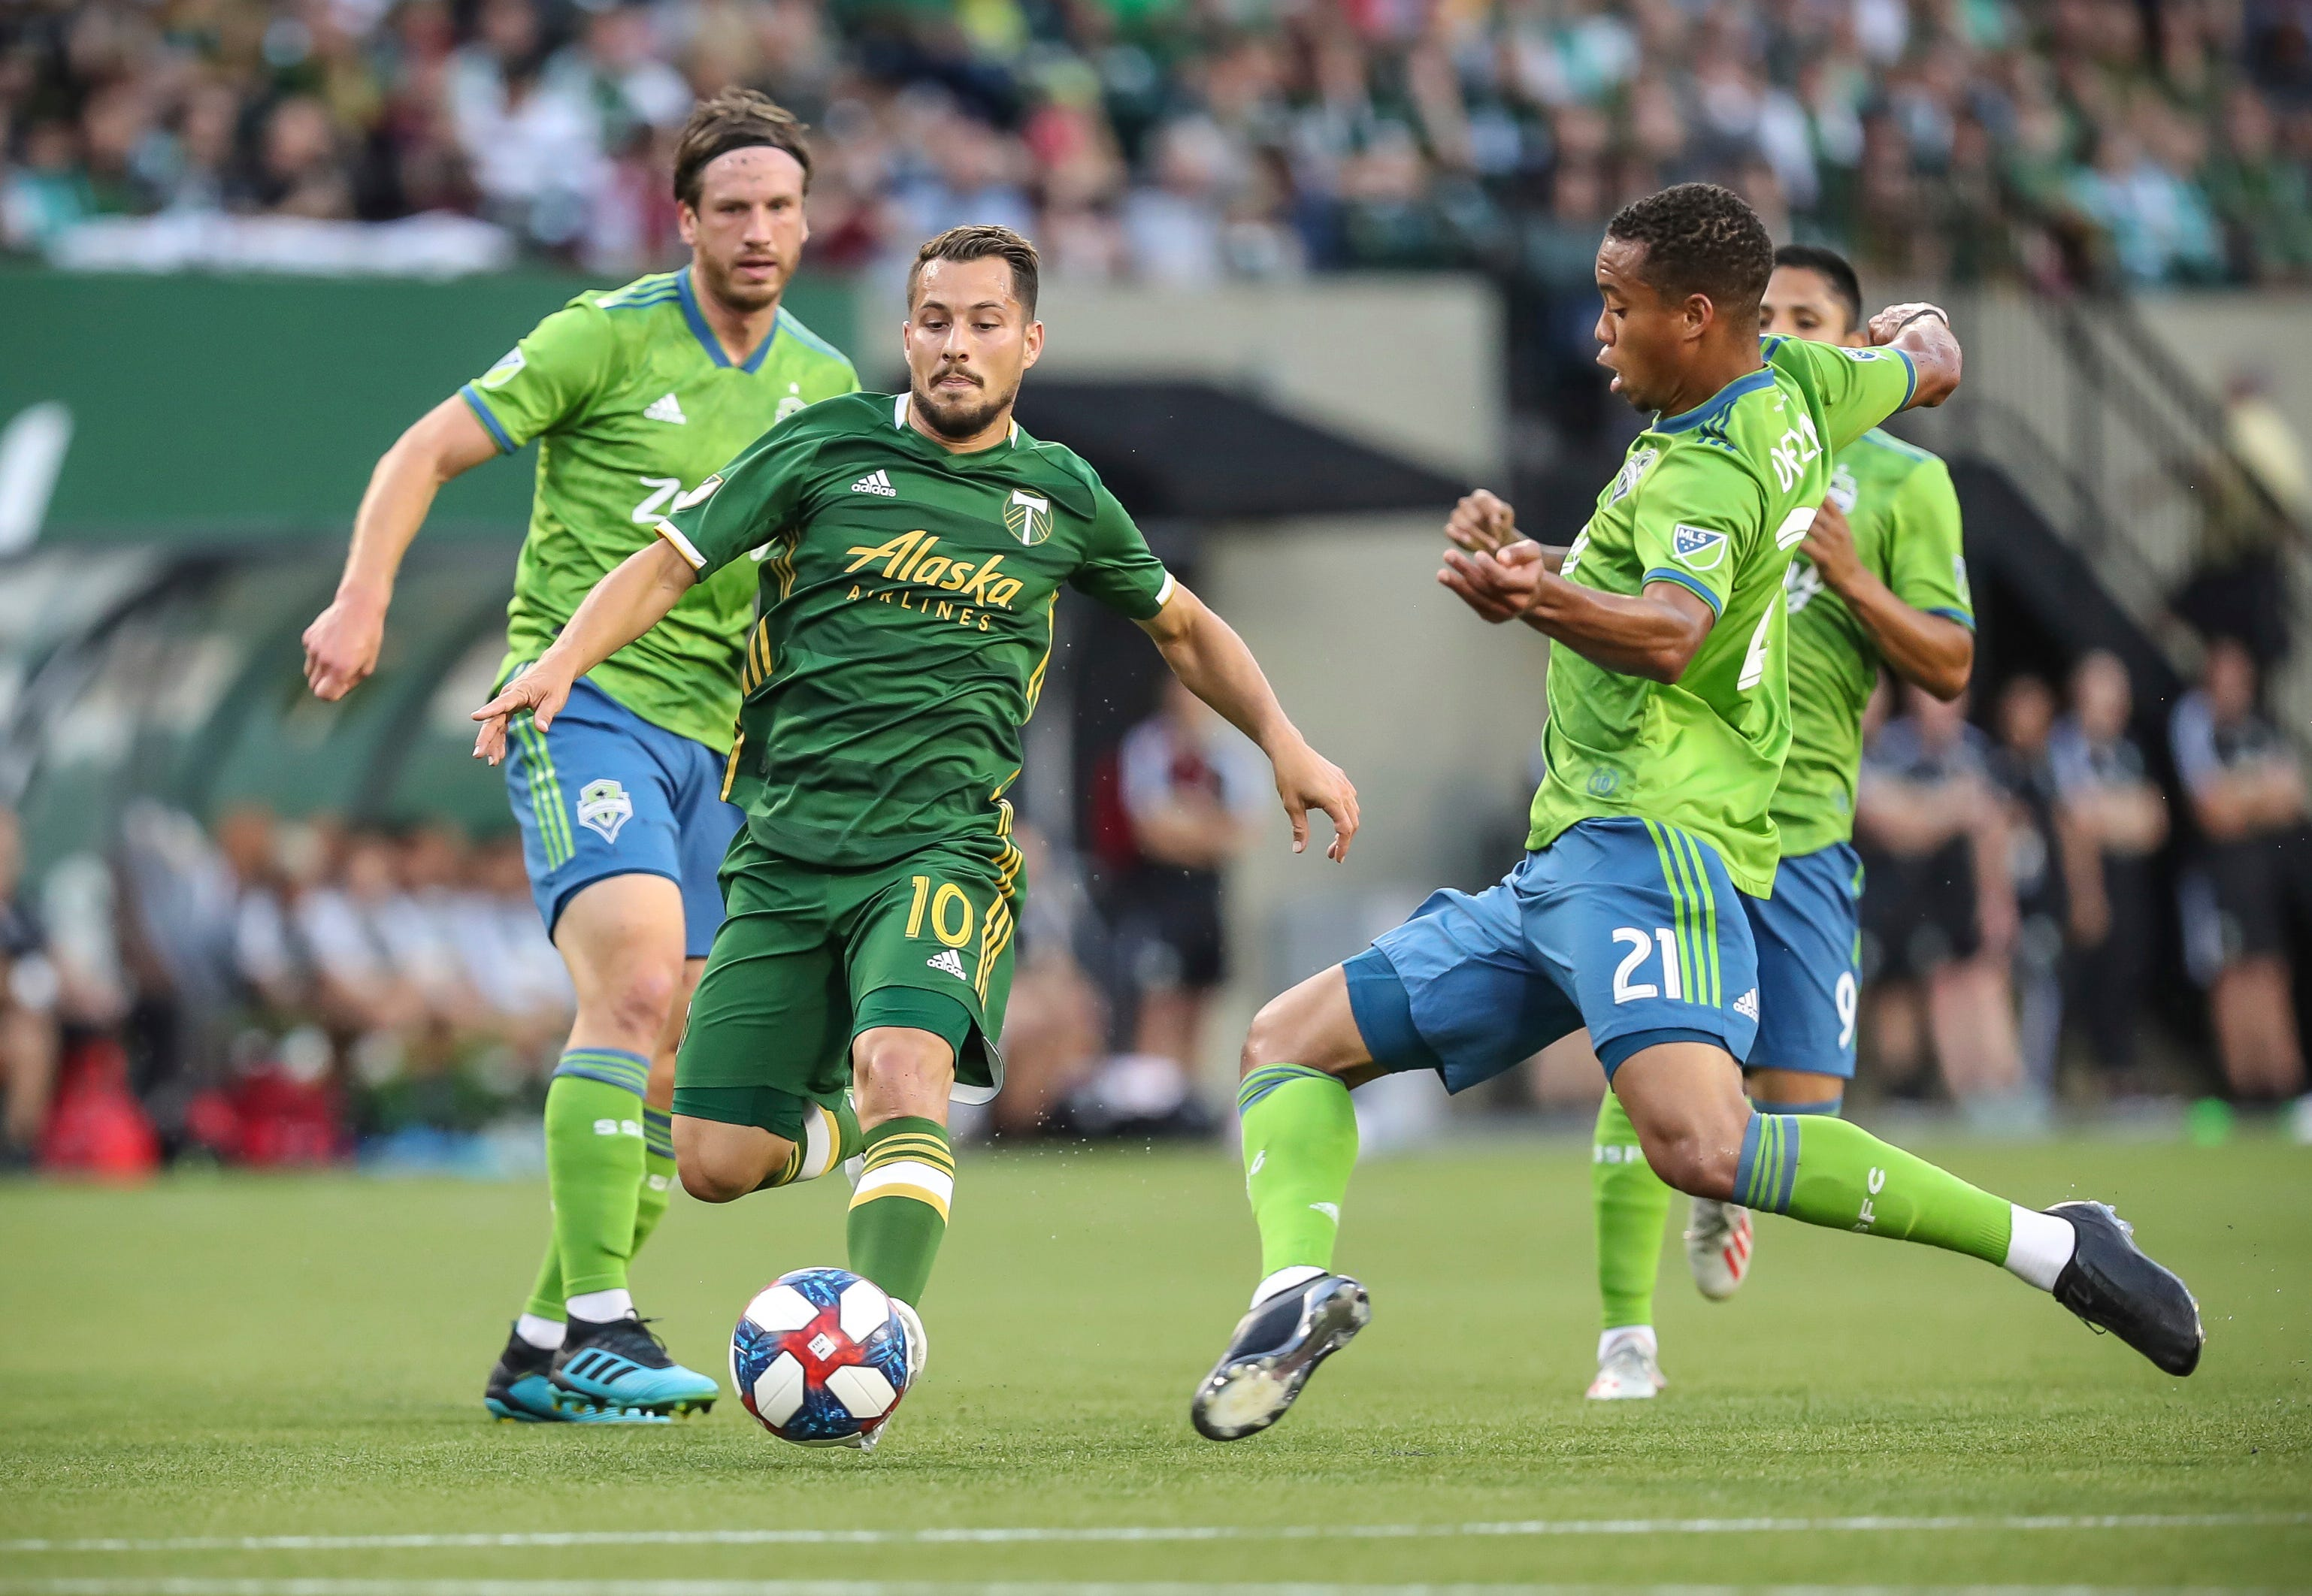 Sounders best Timbers 2-1 for Cascadia Cup